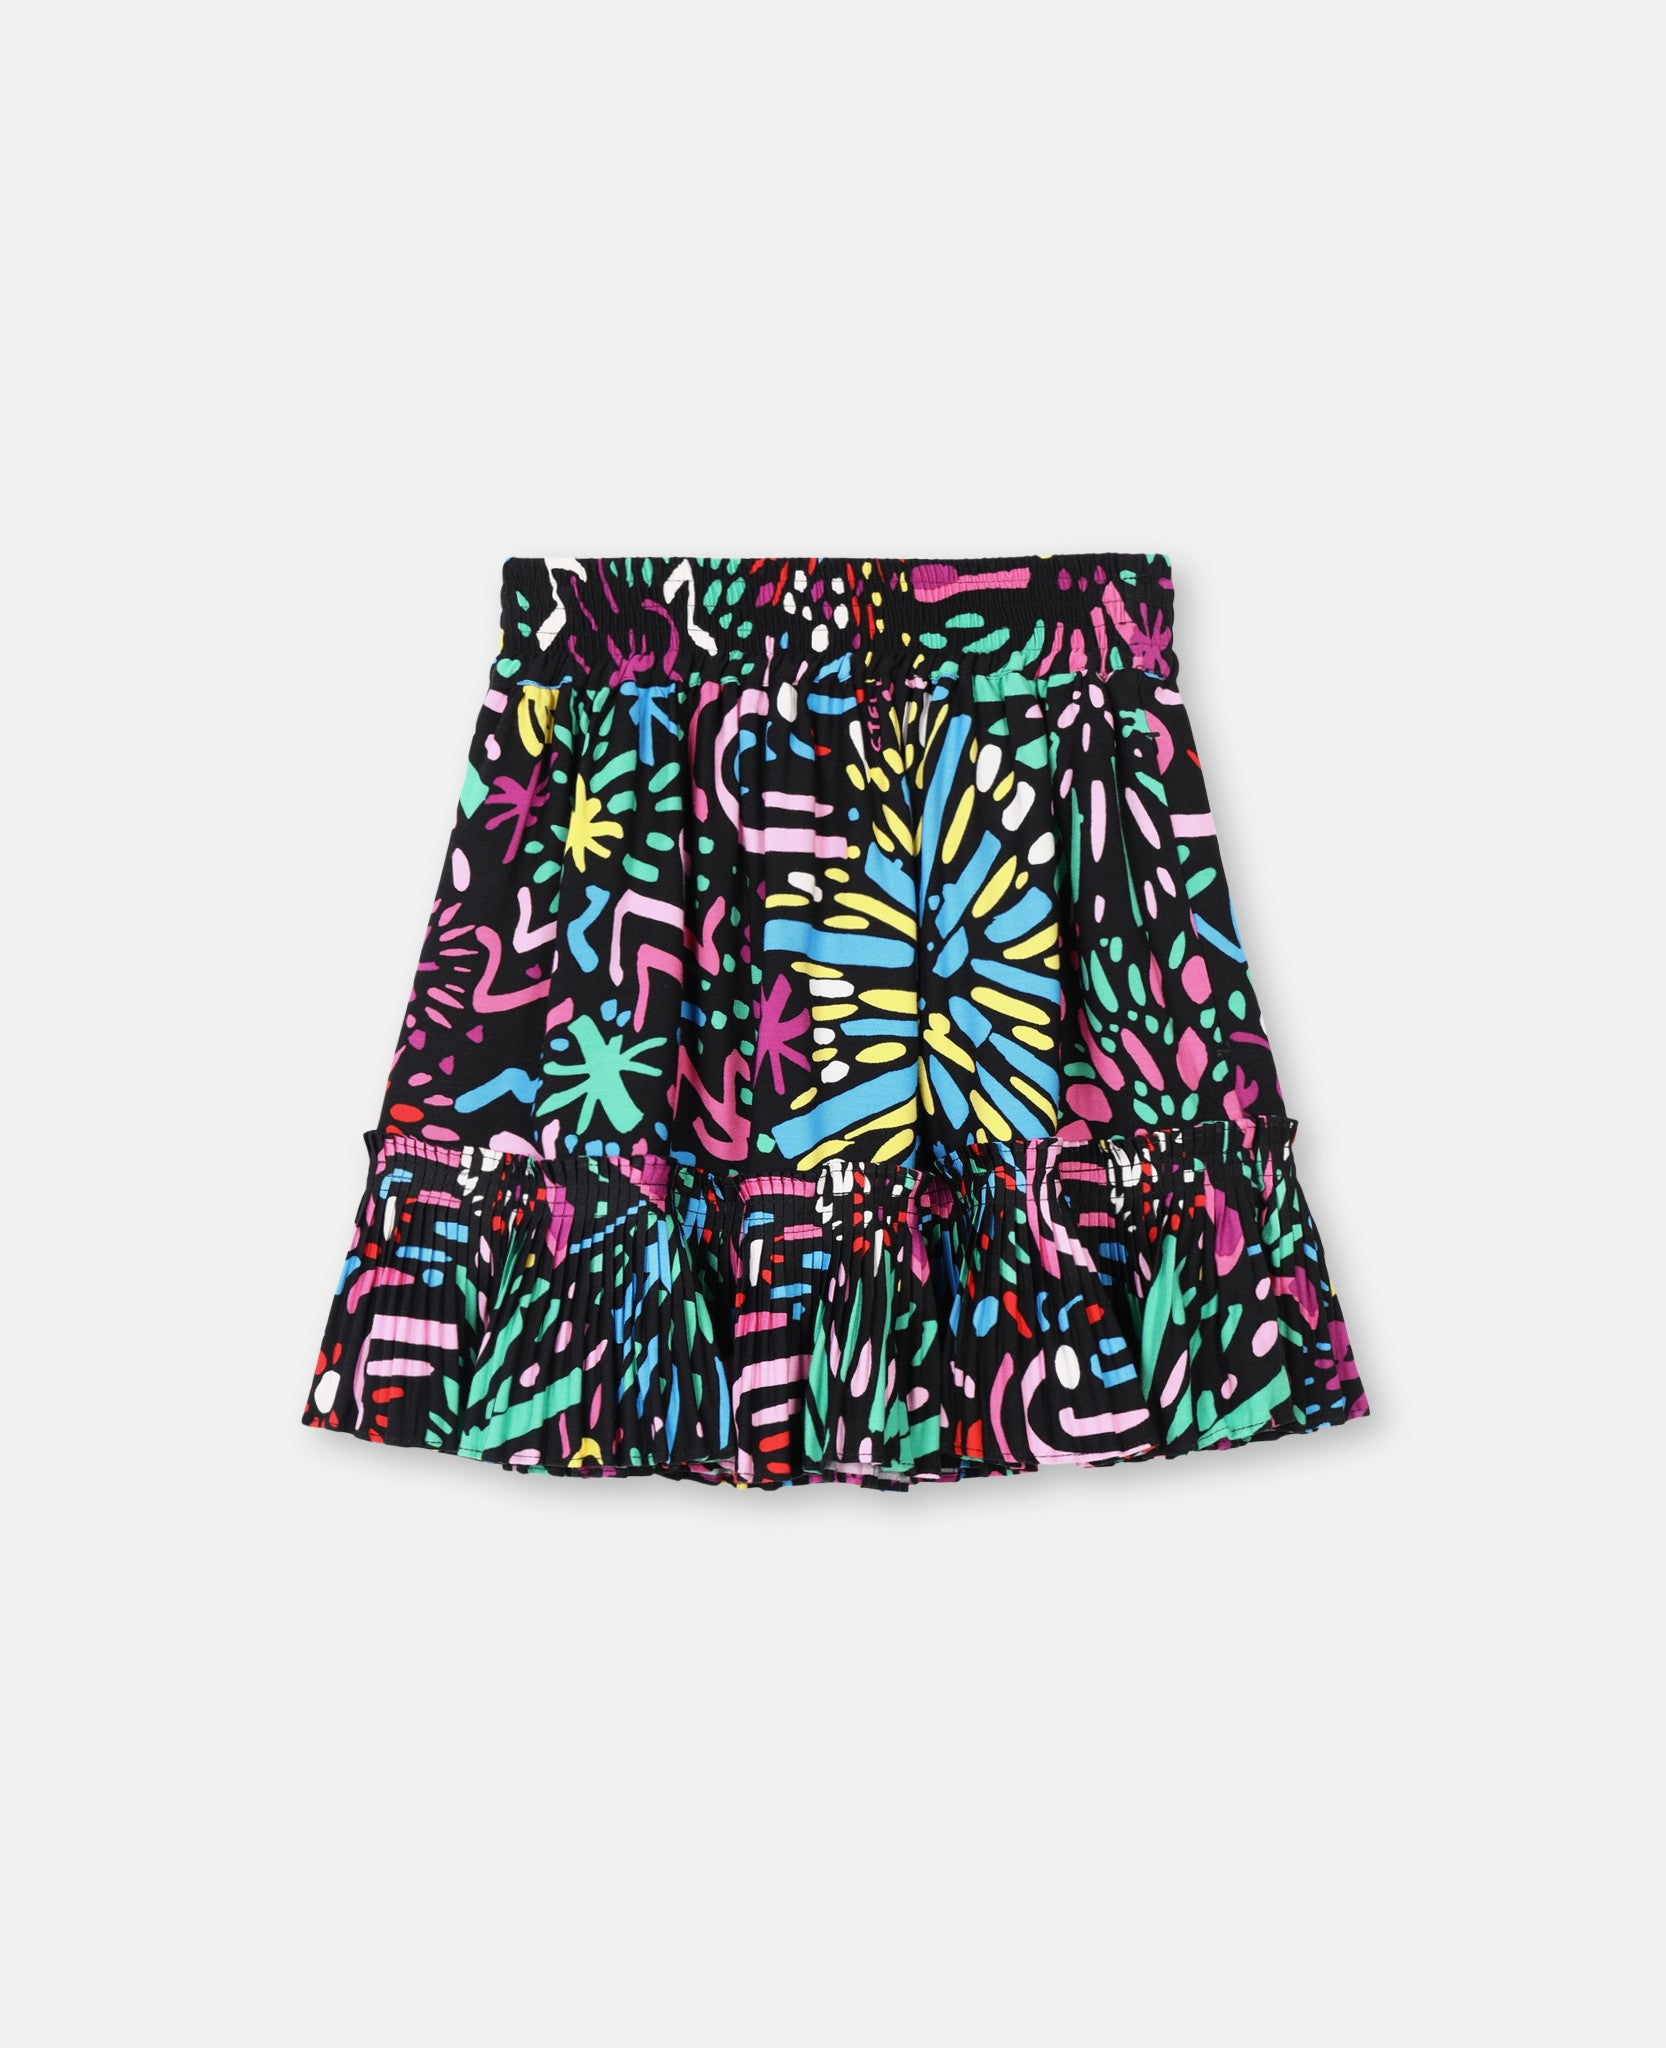 Stella McCartney - Fireworks Skirt